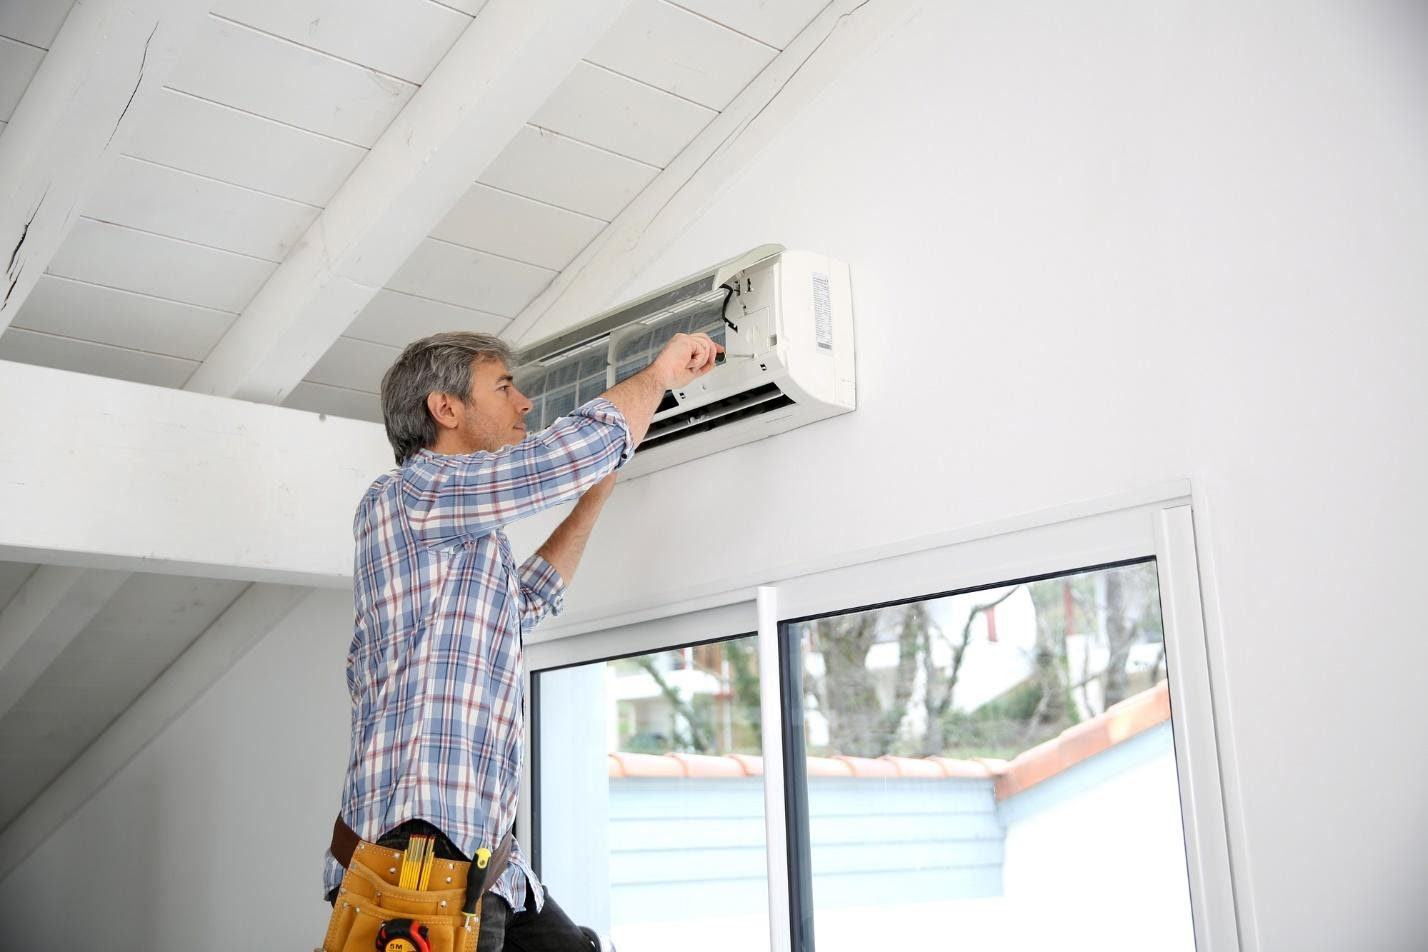 experts in air conditioning: man repairing AC unit.